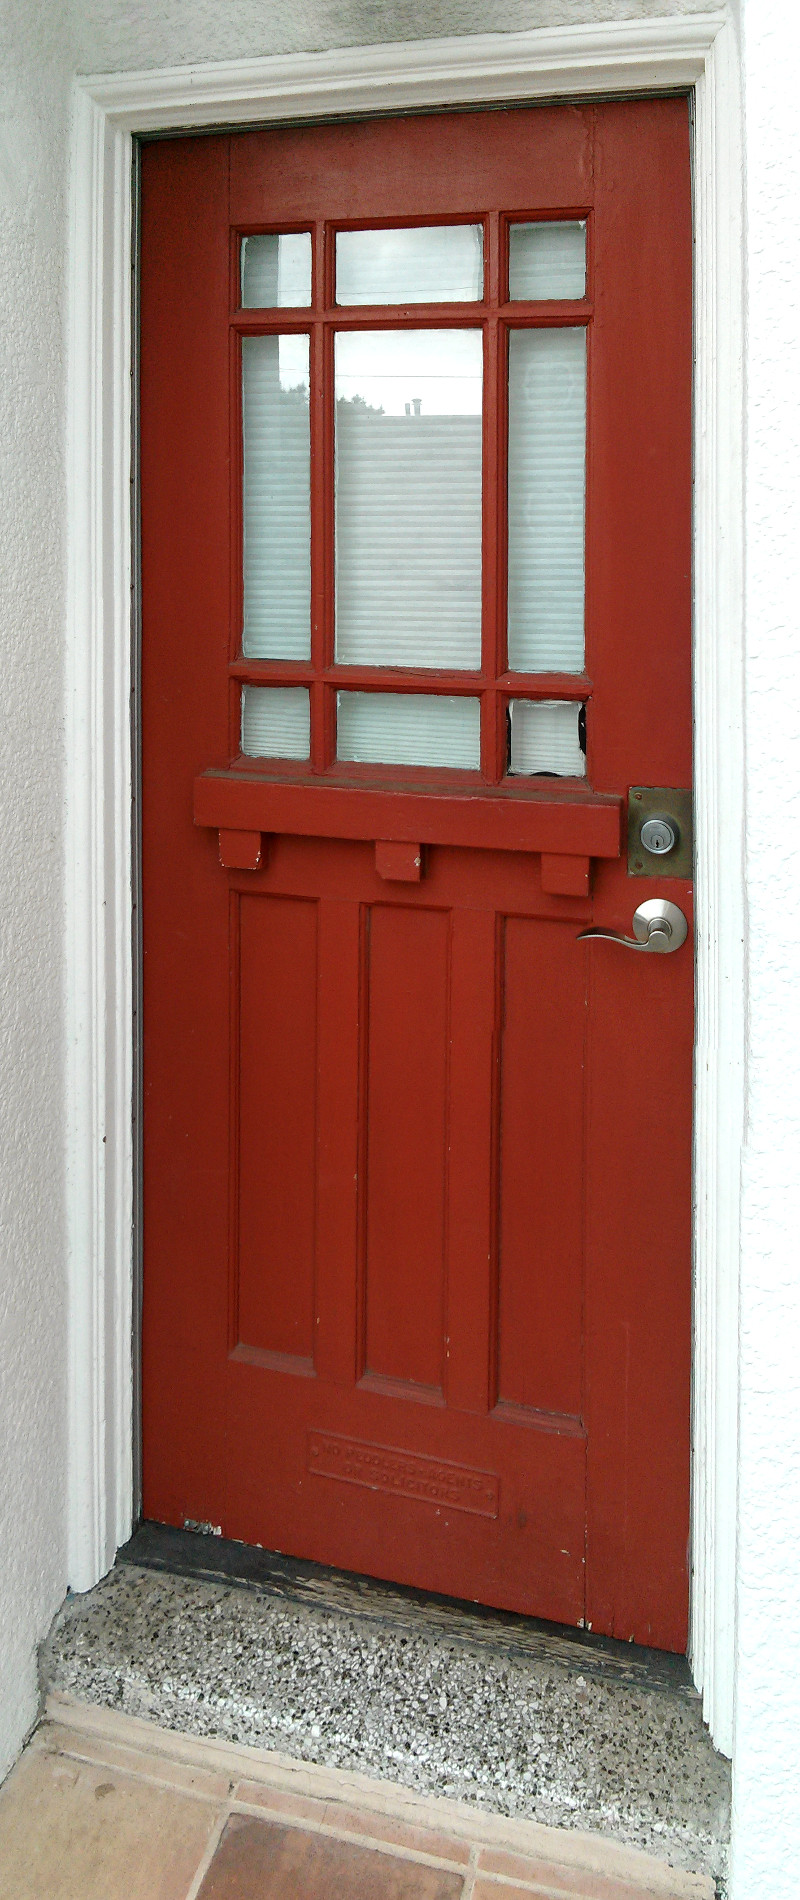 Front door before replacement